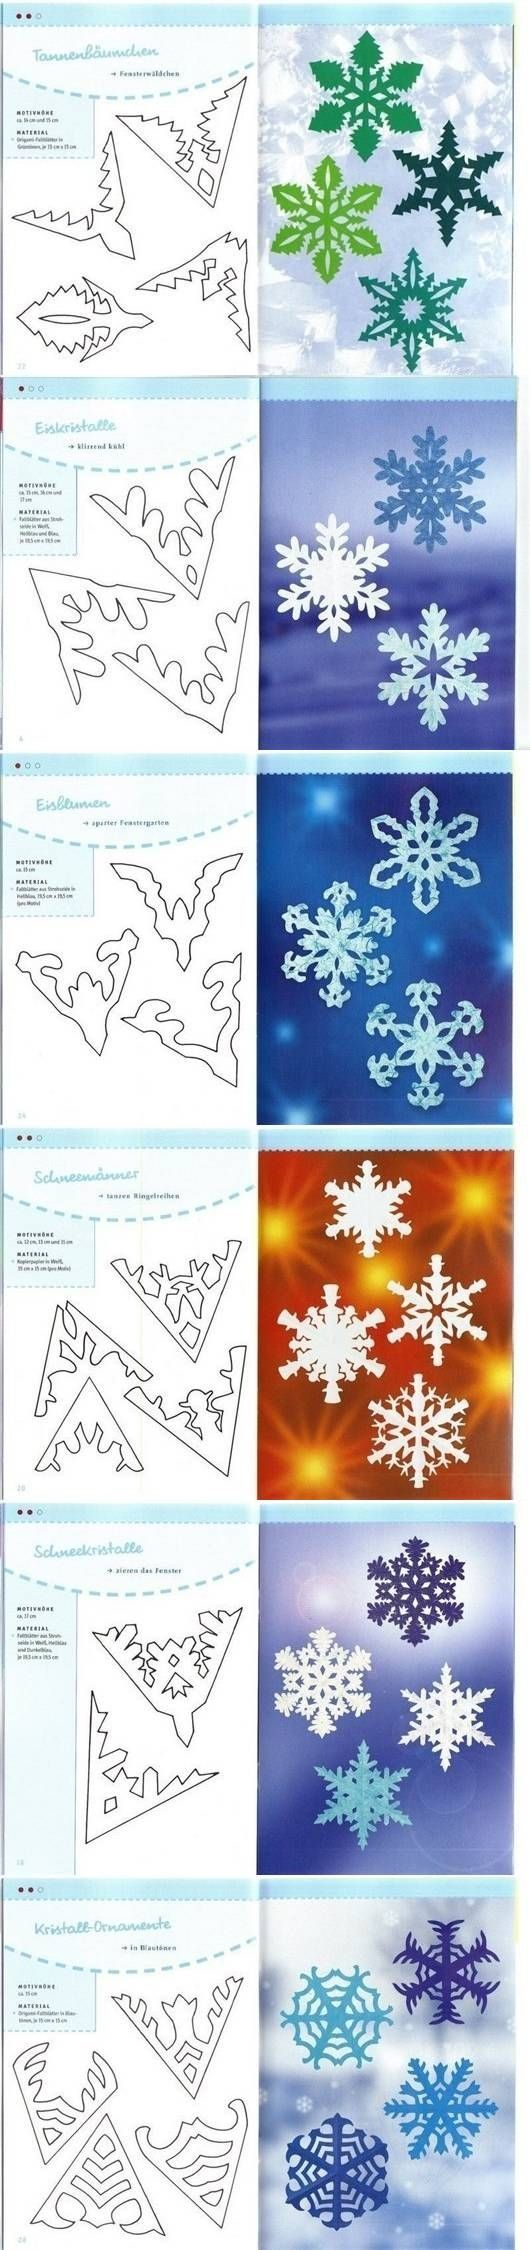 DIY Paper Schemes of Snowflakes diy how to tutorial Christmas Christmas crafts